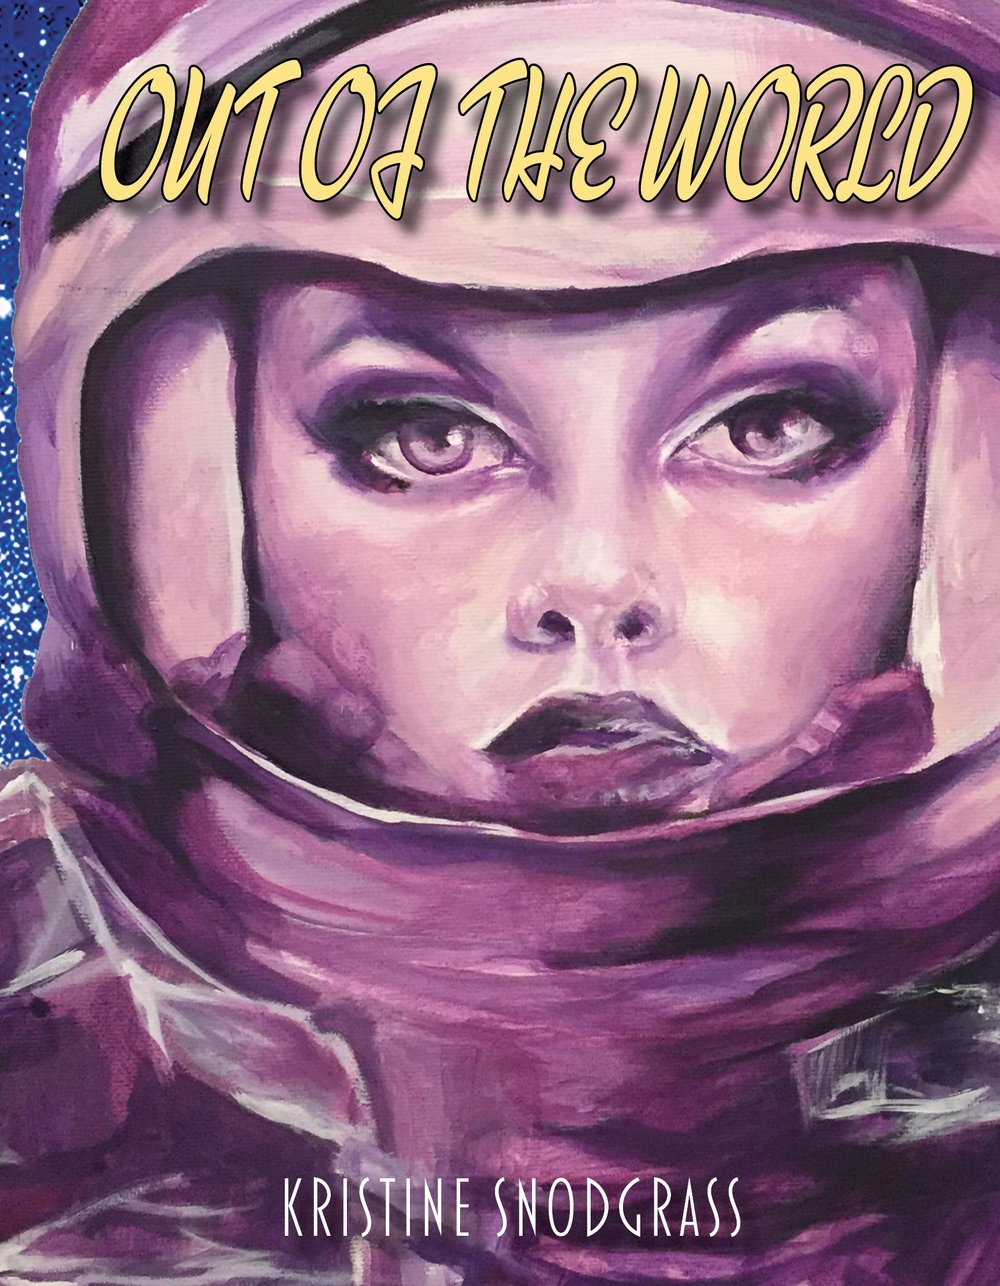 Out of the world cover.jpg